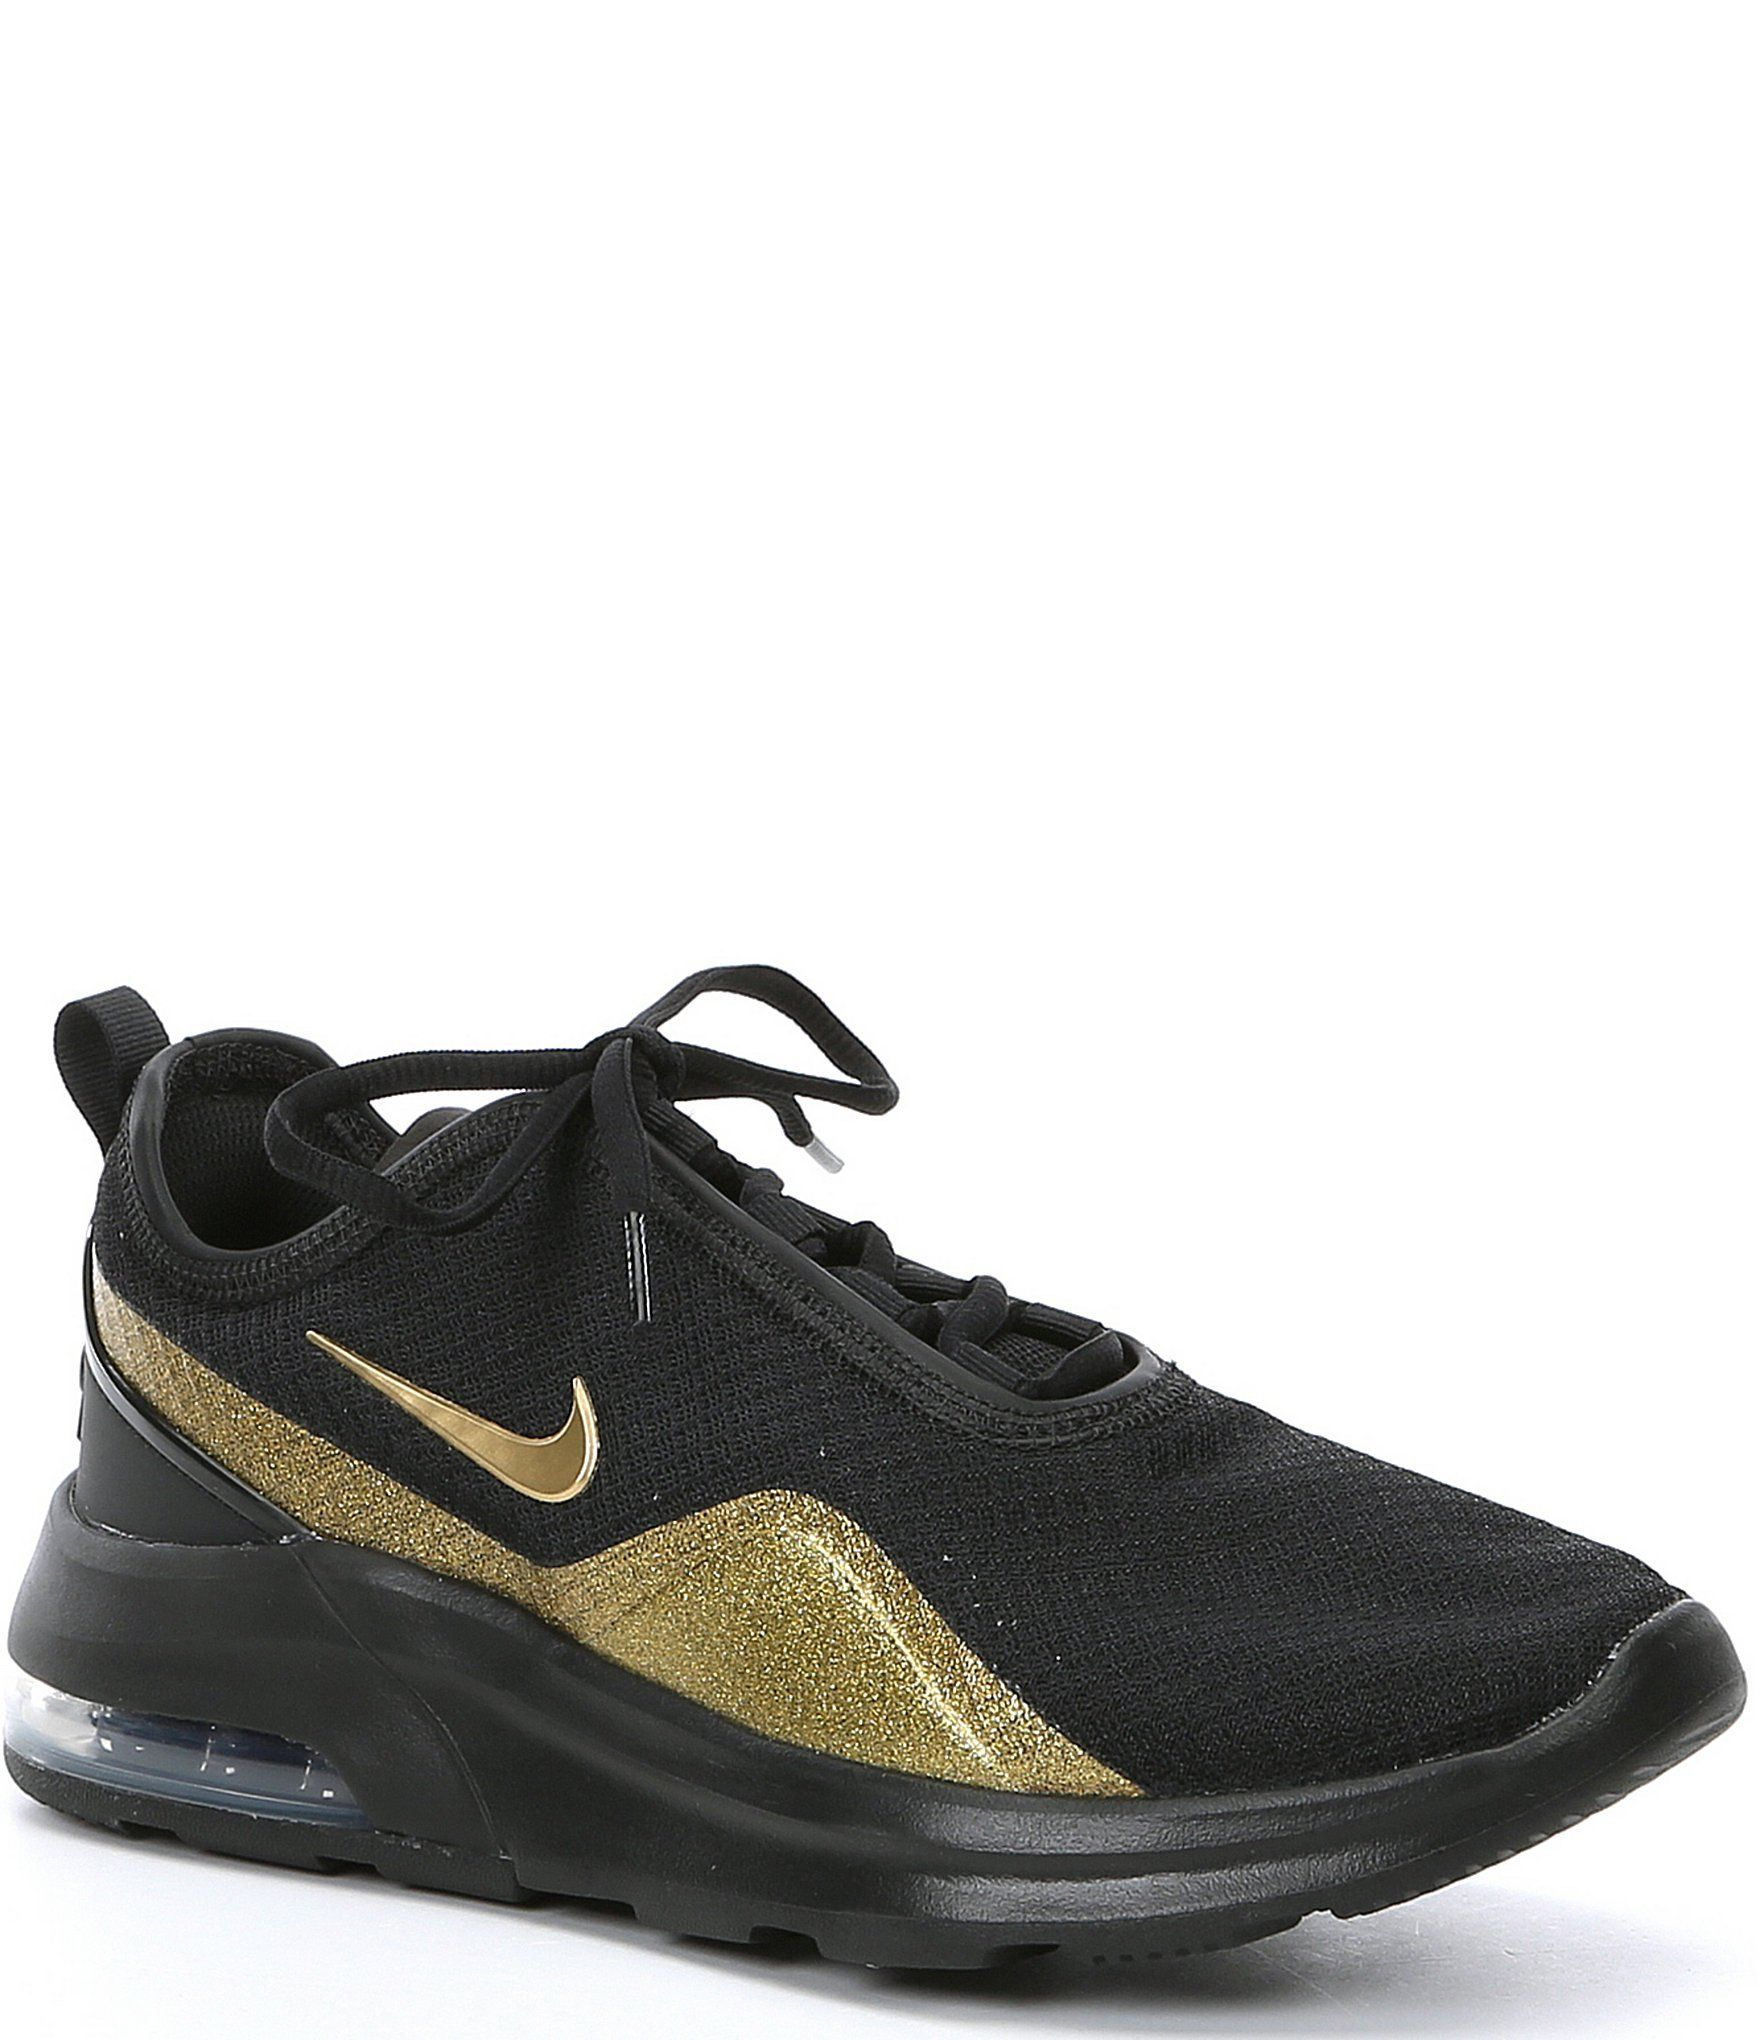 Nike Women's Air Max Motion 2 Lifestyle Sneaker Black